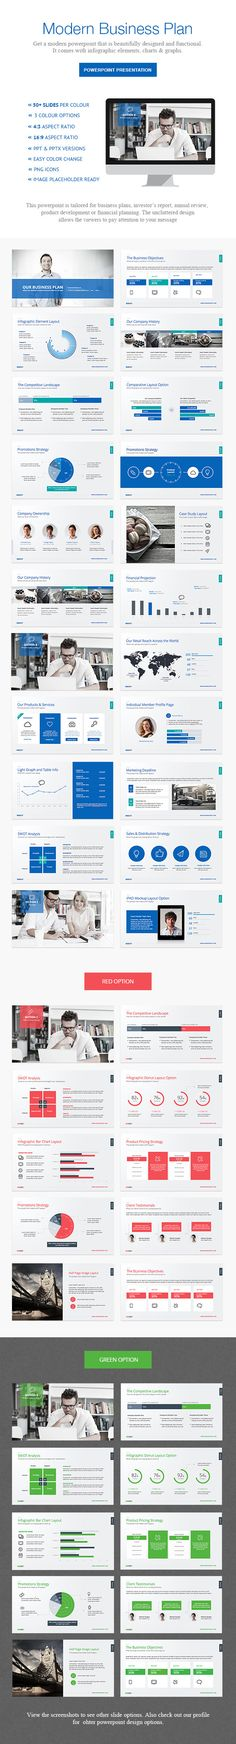 Business Plan Powerpoint #info graphics #marketing #microsoft powerpoint • Available here → http://graphicriver.net/item/business-plan-powerpoint/6098844?s_rank=5&ref=pxcr